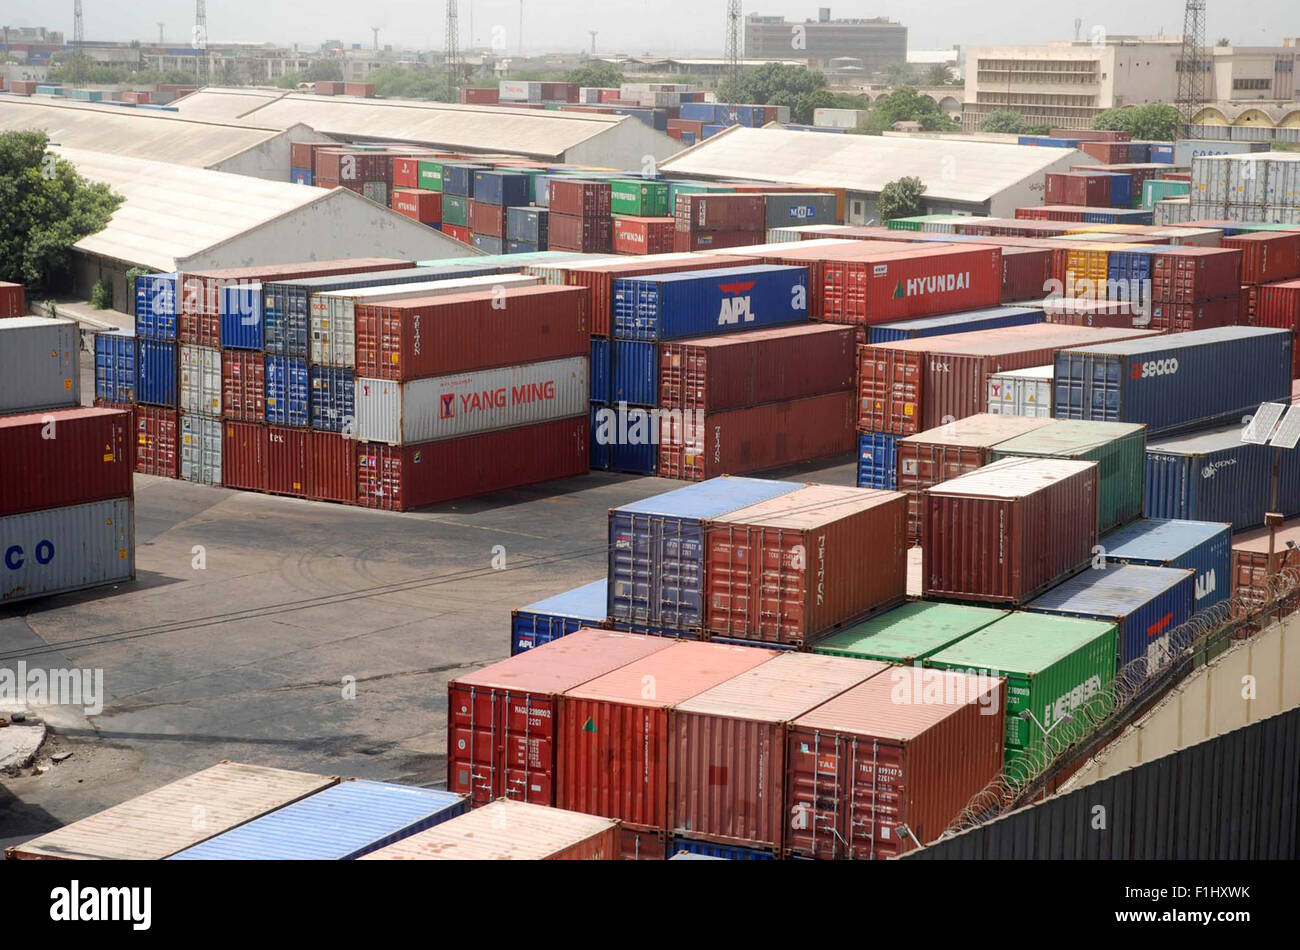 Larger numbers of containers of imported goods can be seen